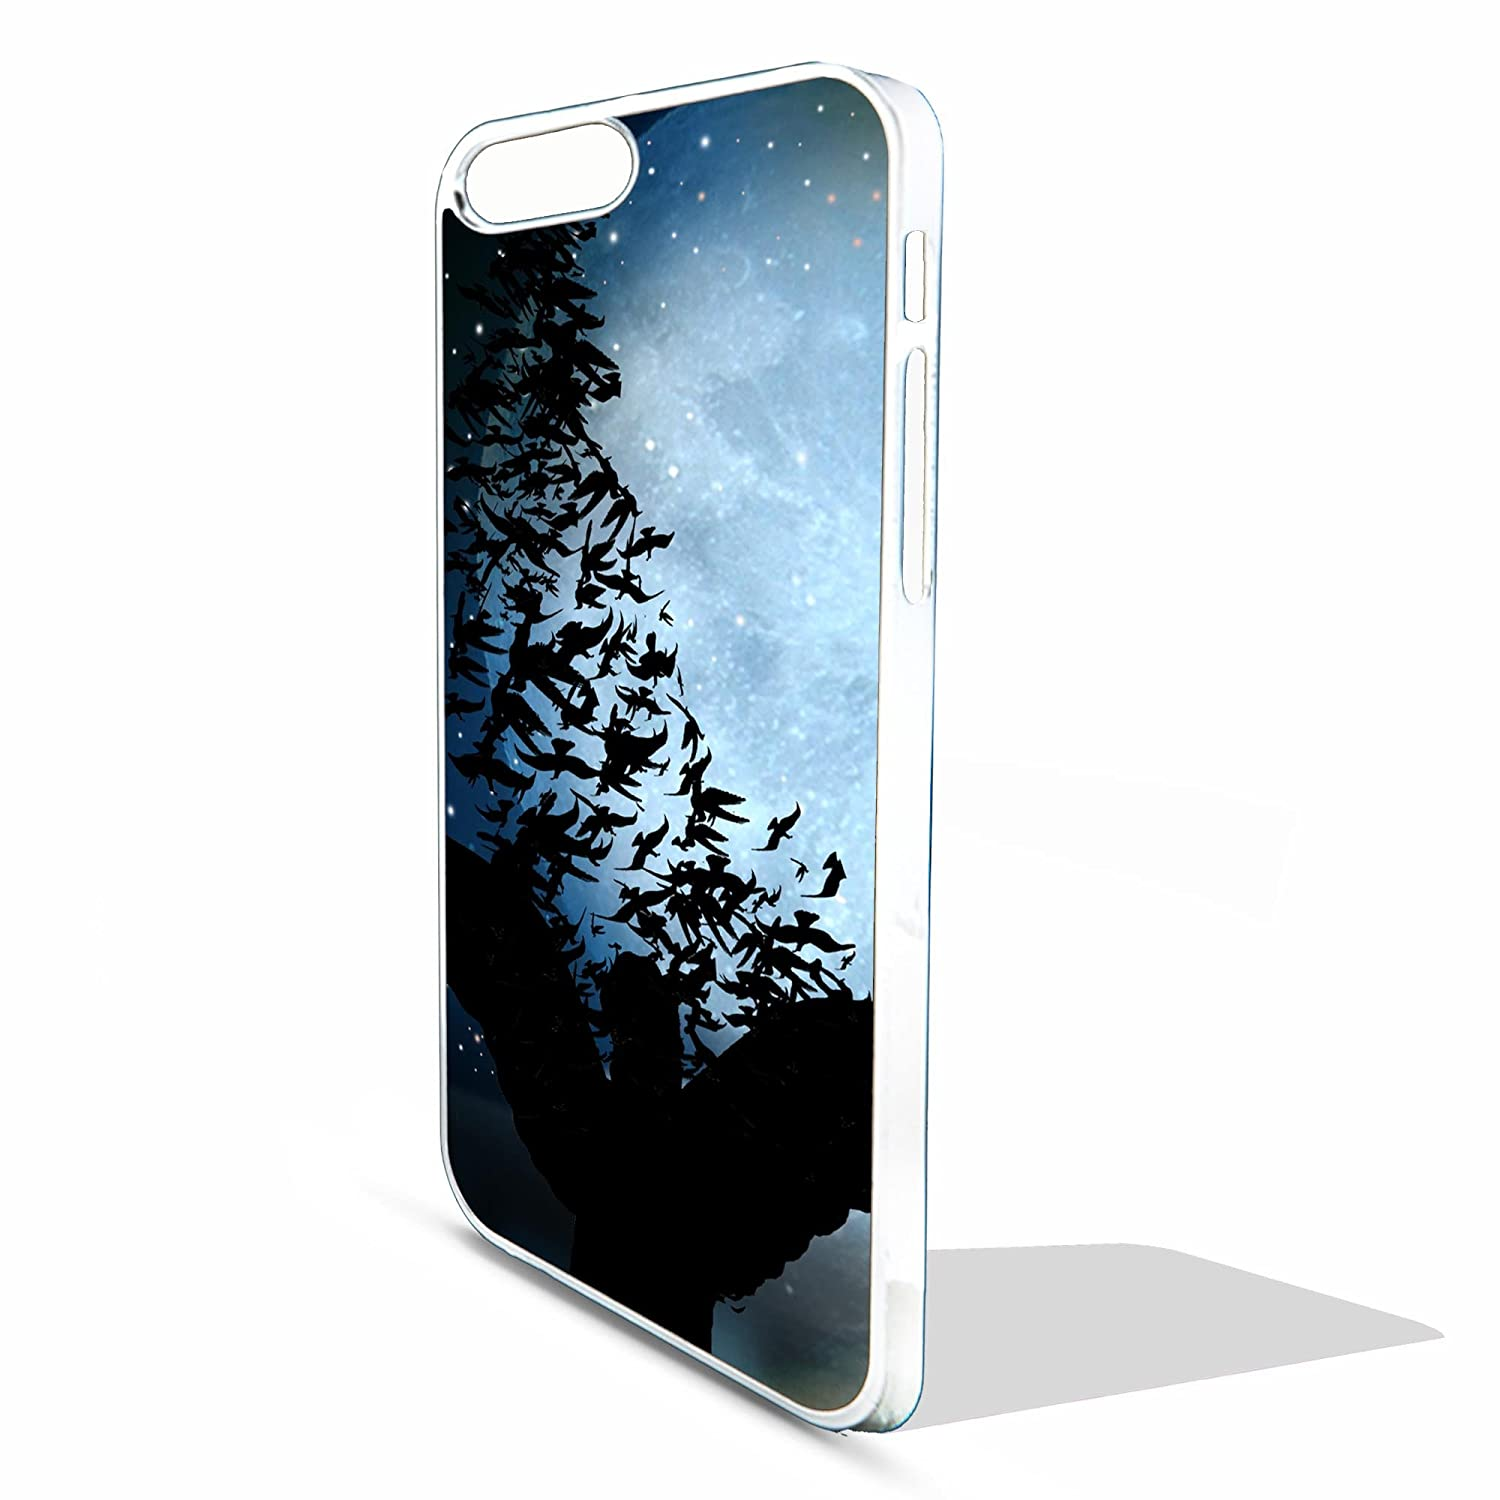 Coque de protection pour Apple Iphone 6 4,7 'Angel silhouette art religieux supernatural full moon Coque Blanc